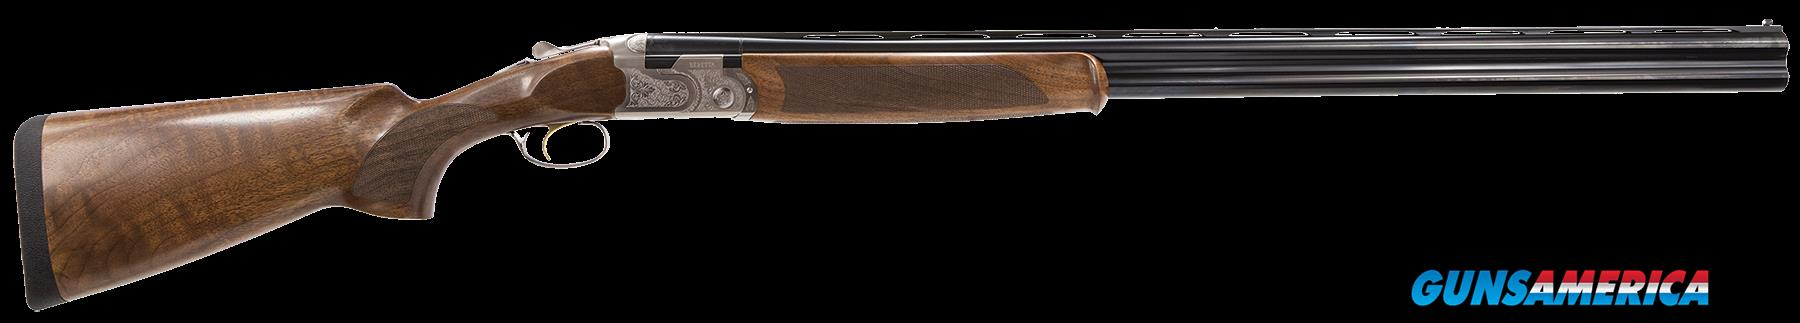 "Beretta USA J6869H2 686 Silver Pigeon I Sporting Over/Under 12 Gauge 32"" 3"" Walnut Stk Silver  Guns > Shotguns > B Misc Shotguns"